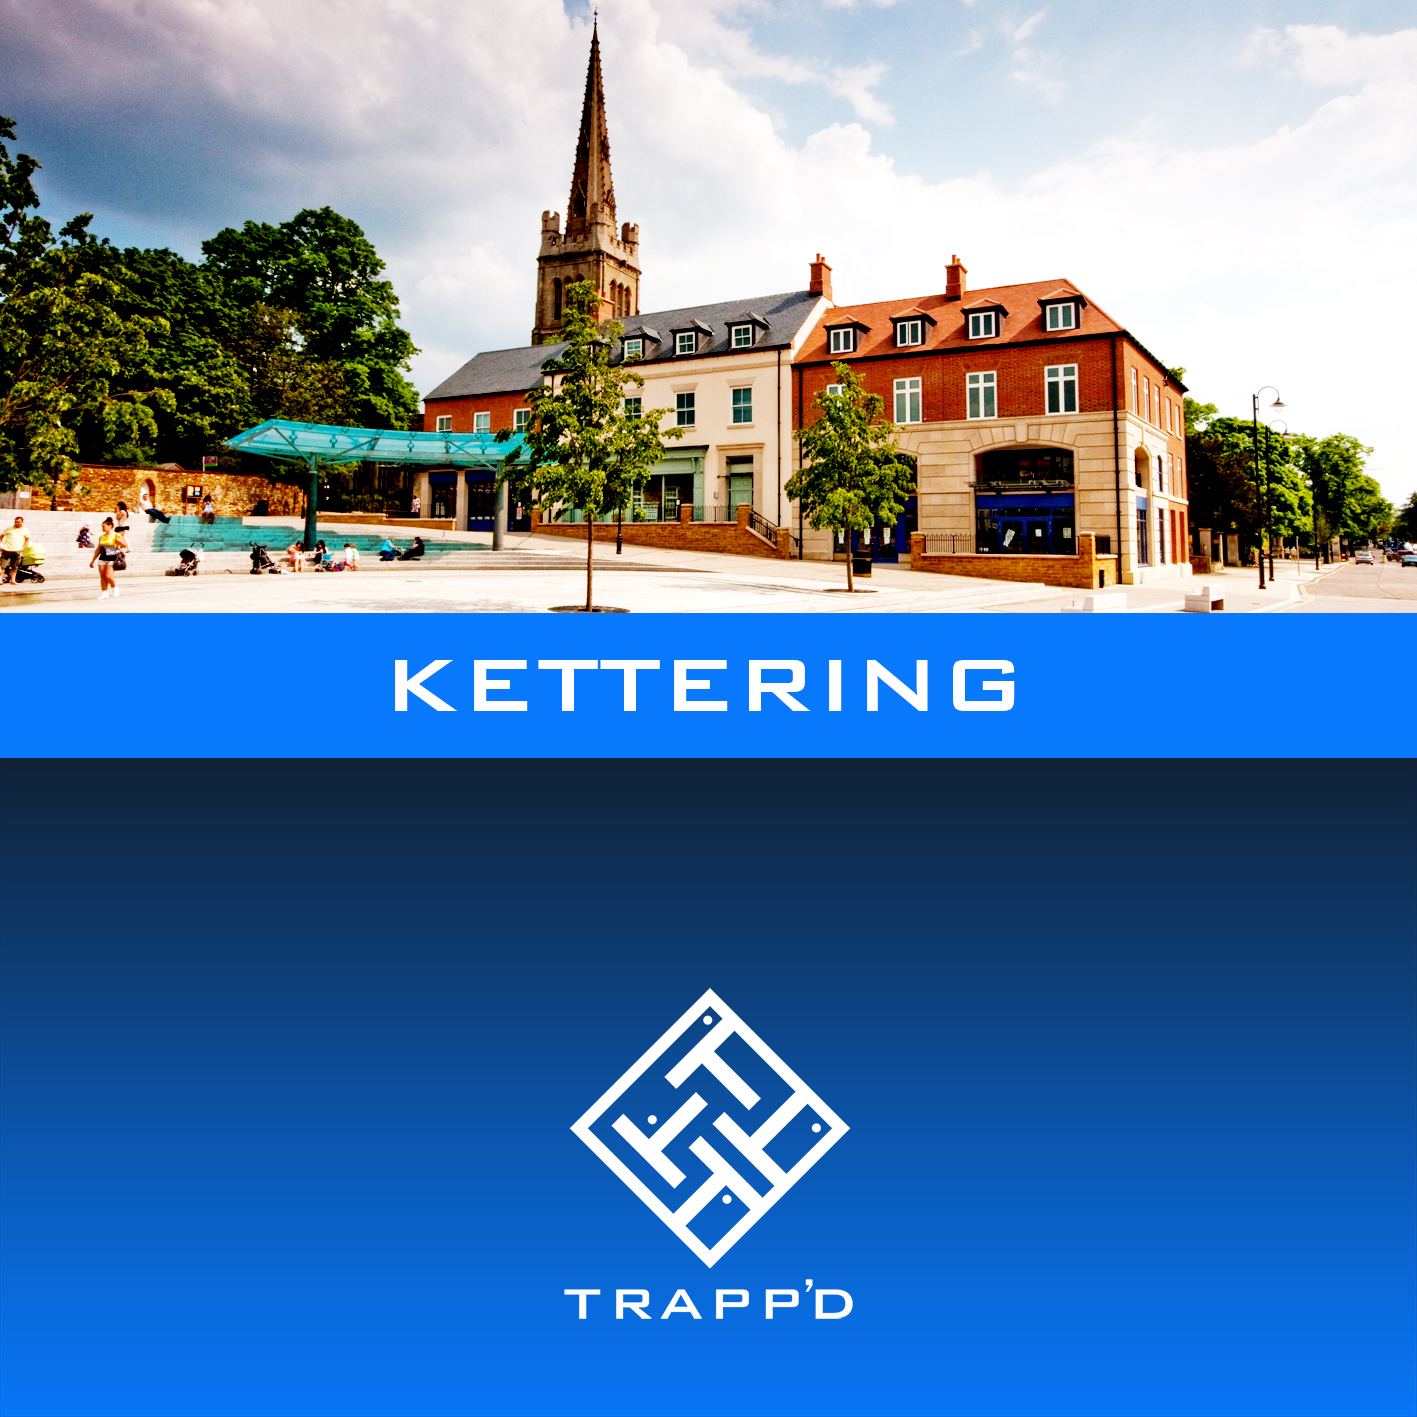 Trappd Kettering